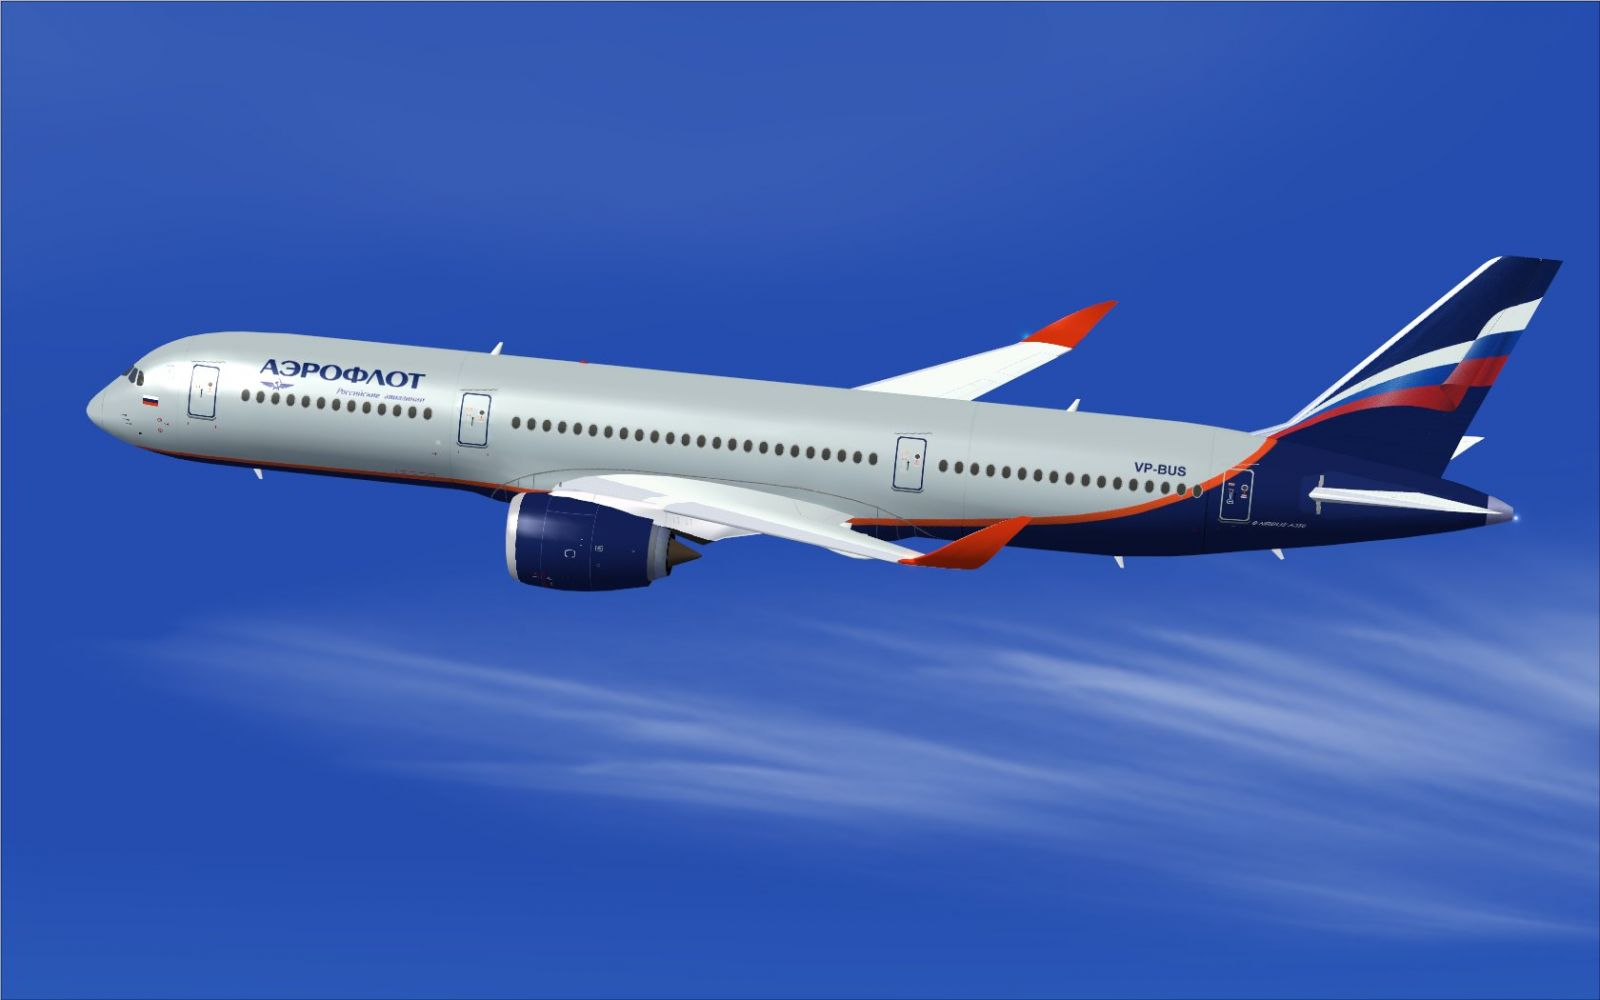 model planes to fly with Fsx Aeroflot Airbus A350 800 Xwb on 408912841136339689 together with Terrafugia Flying Airplane Car Enters Production besides Watch furthermore Index further Raf Aircraft.